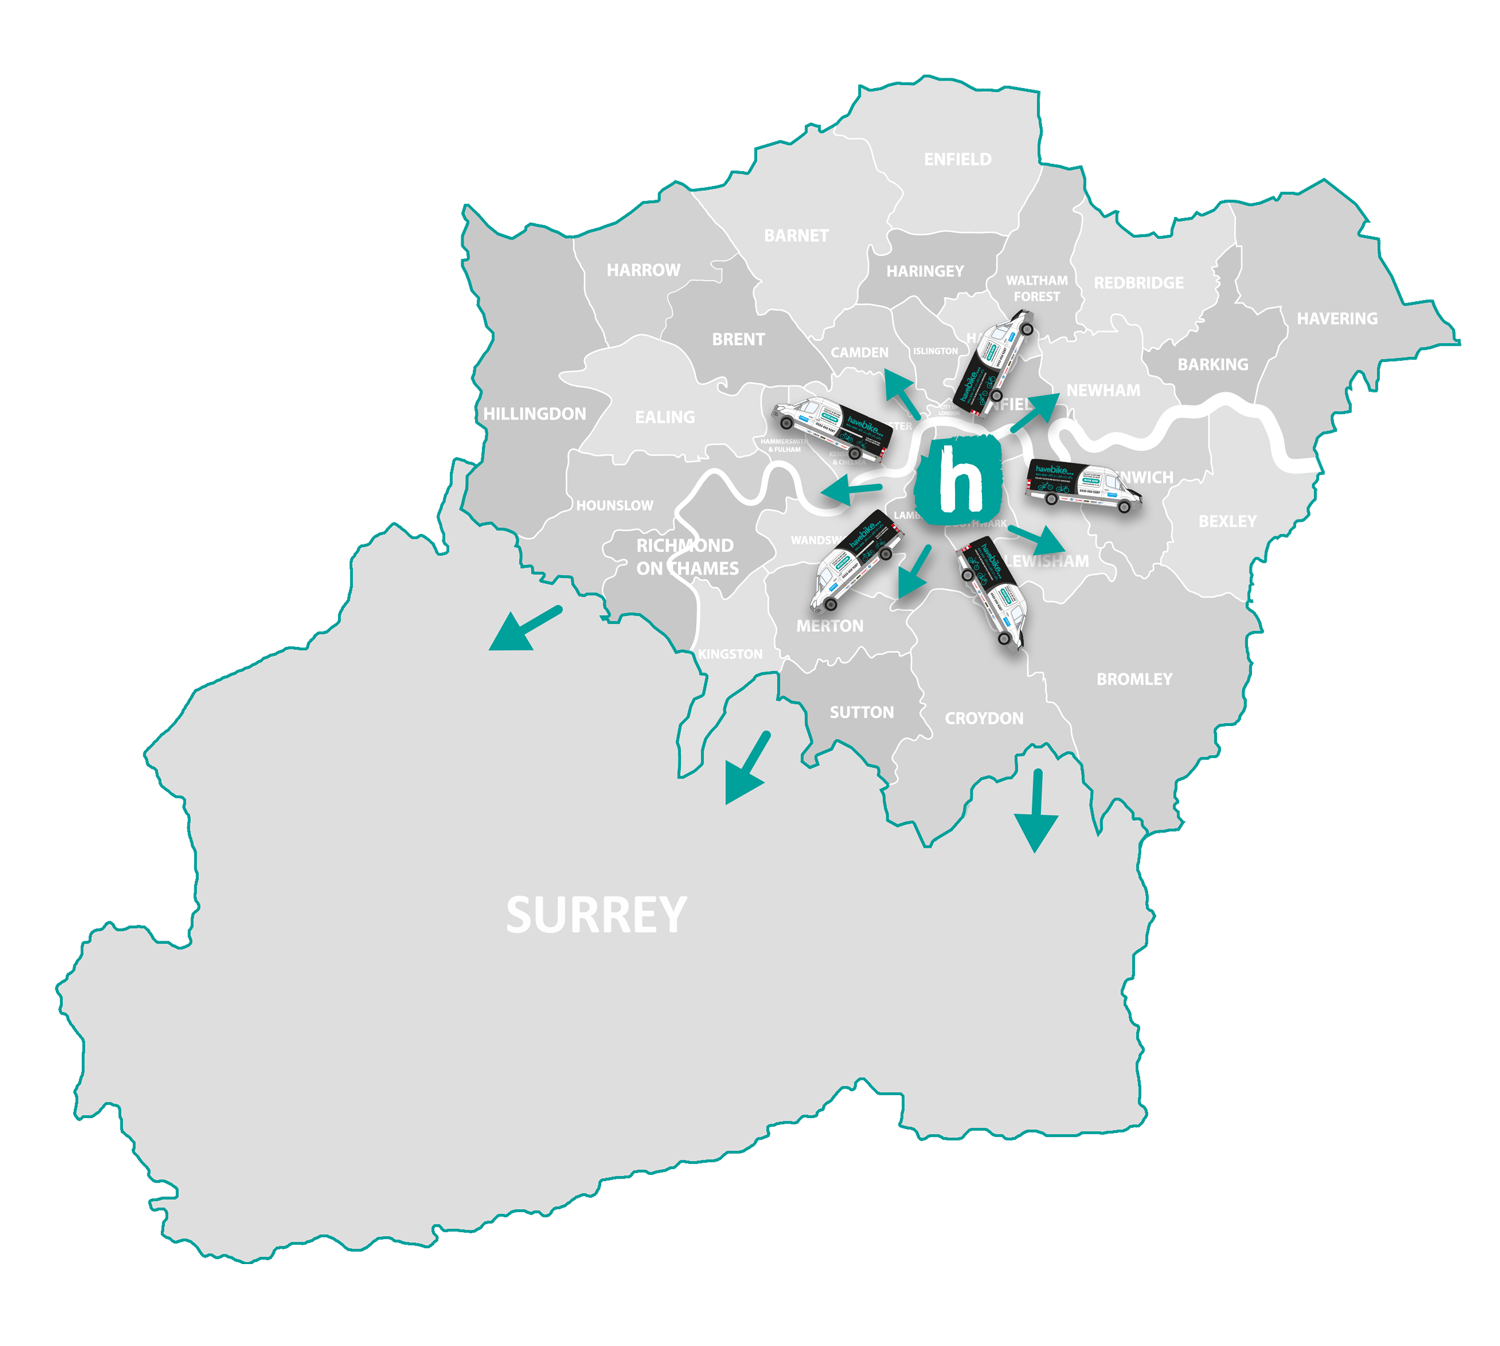 We cover anywhere within The M25 & Surrey as well as other areas of the home counties.